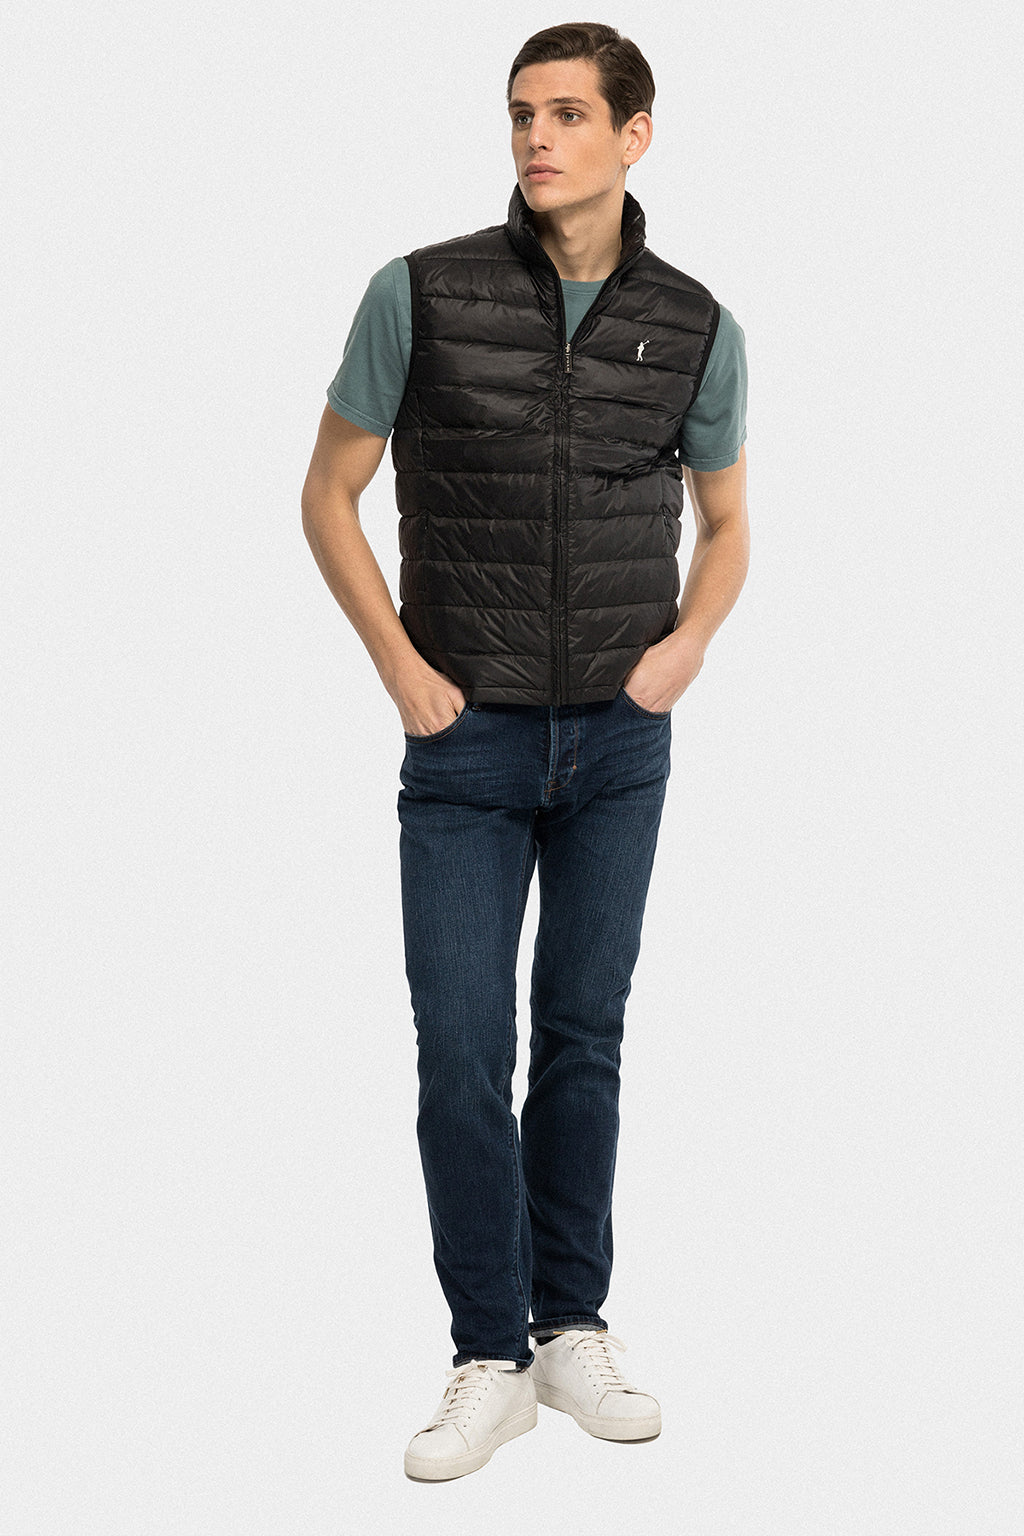 Black ultralight vest